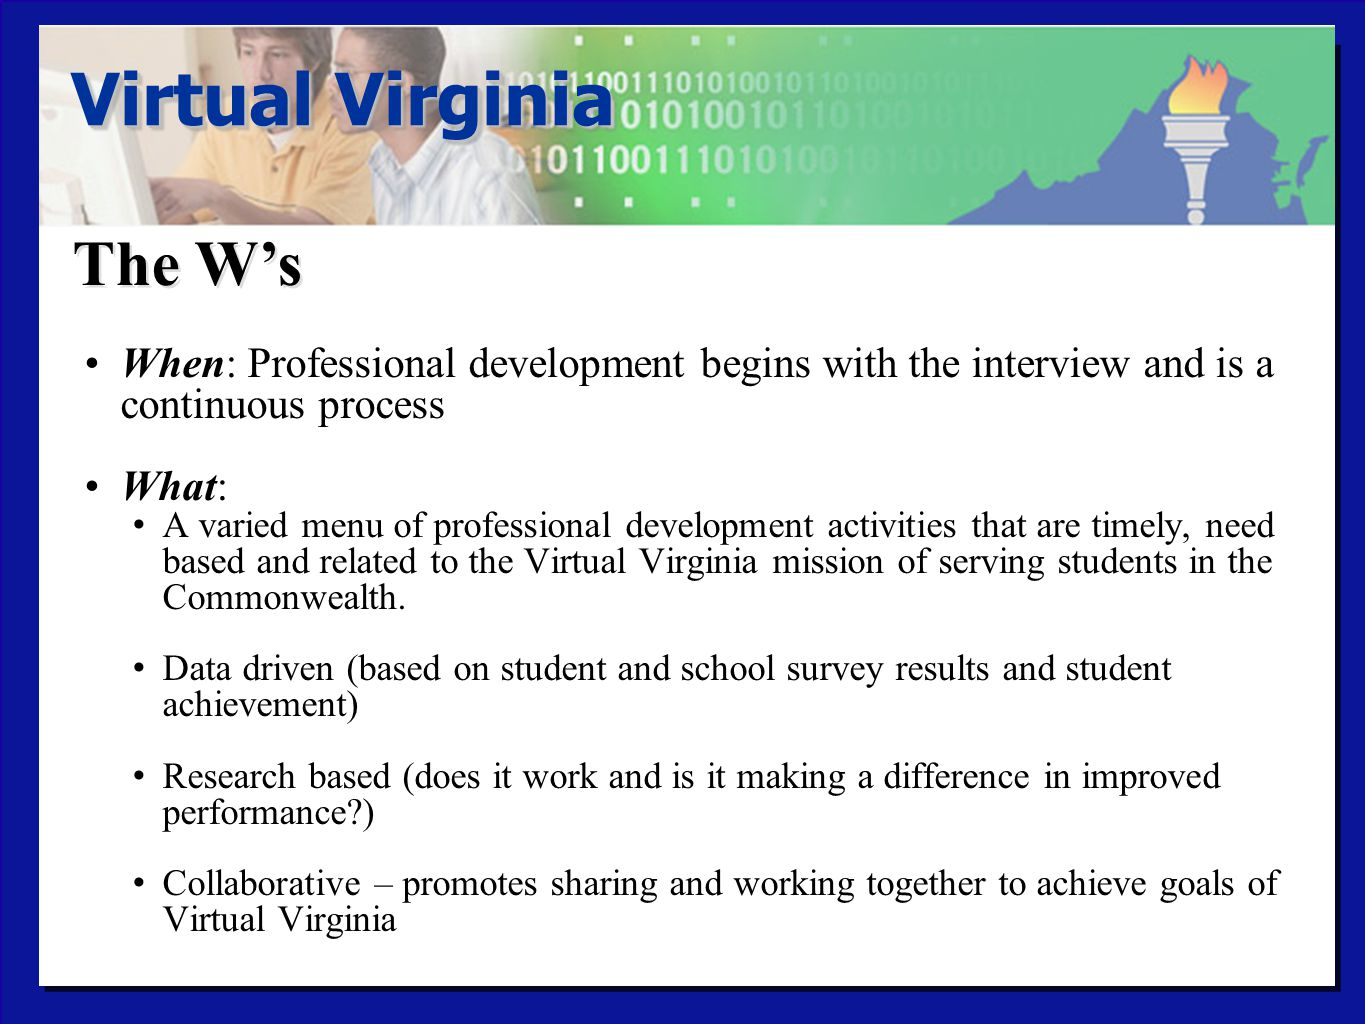 The W's Virtual Virginia When: Professional development begins with the interview and is a continuous process What: A varied menu of professional development activities that are timely, need based and related to the Virtual Virginia mission of serving students in the Commonwealth.